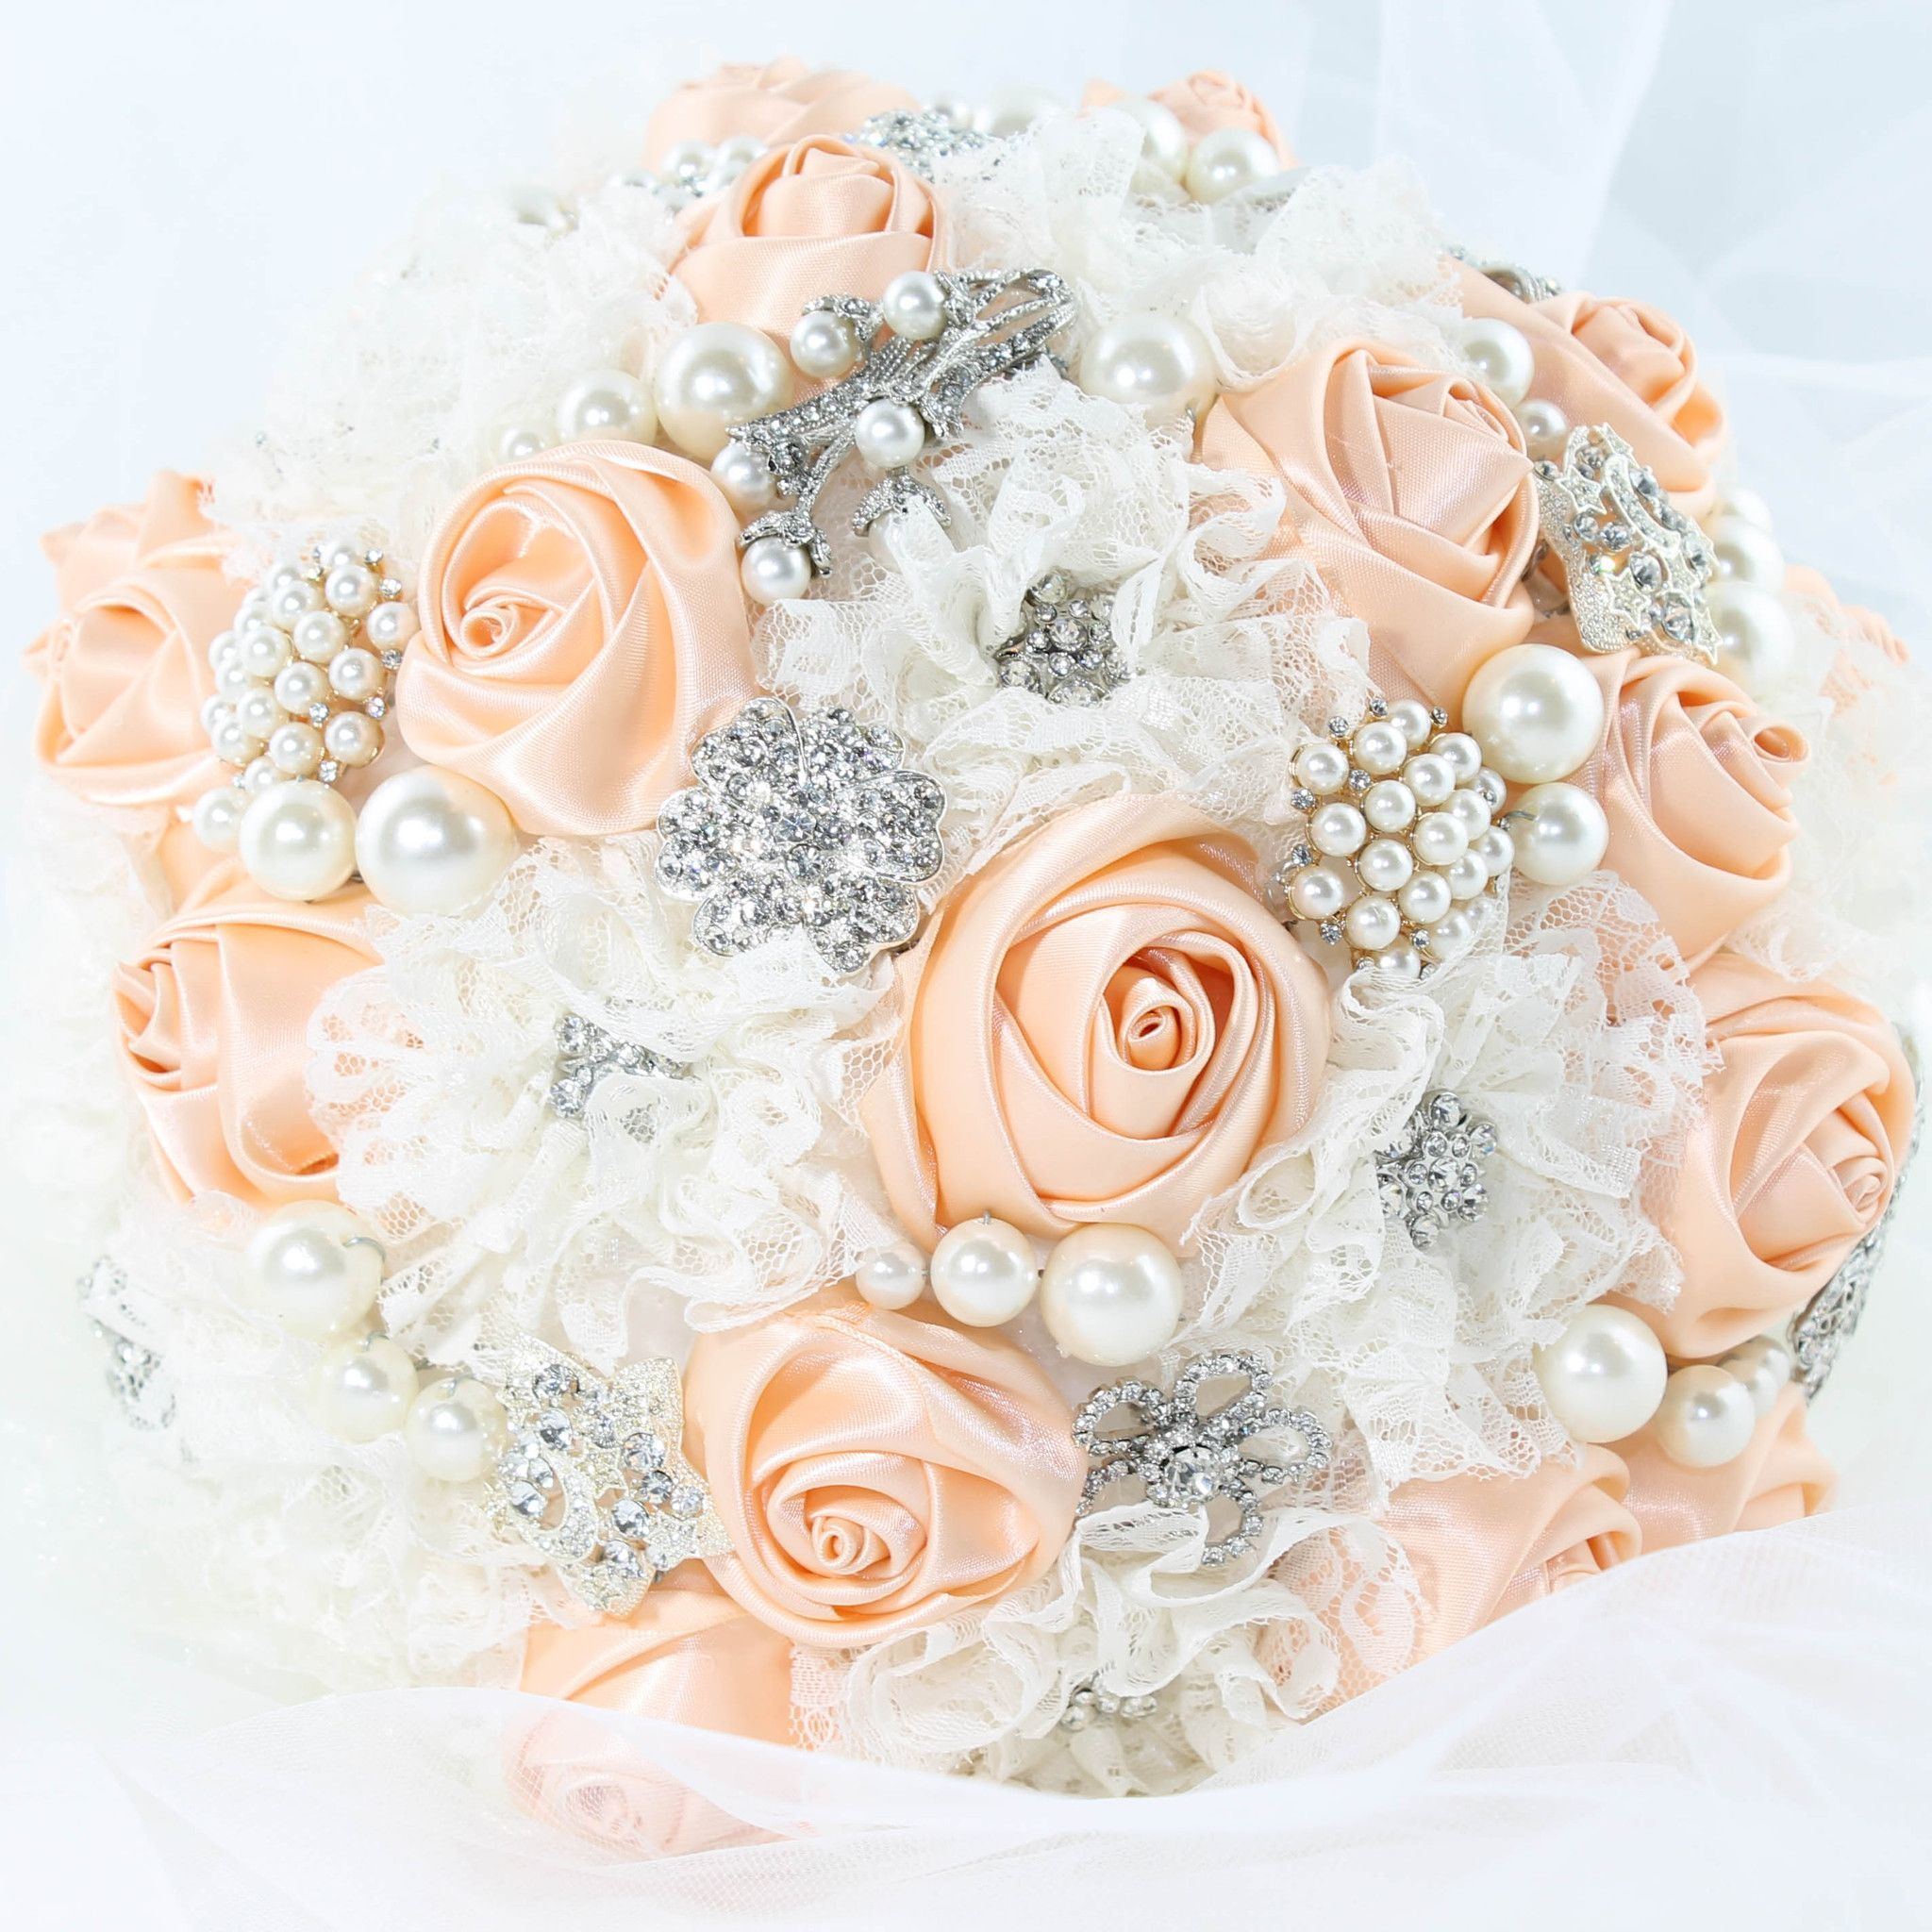 This Bridal Brooch Bouquet Is Handcrafted With Beautiful Sparkling